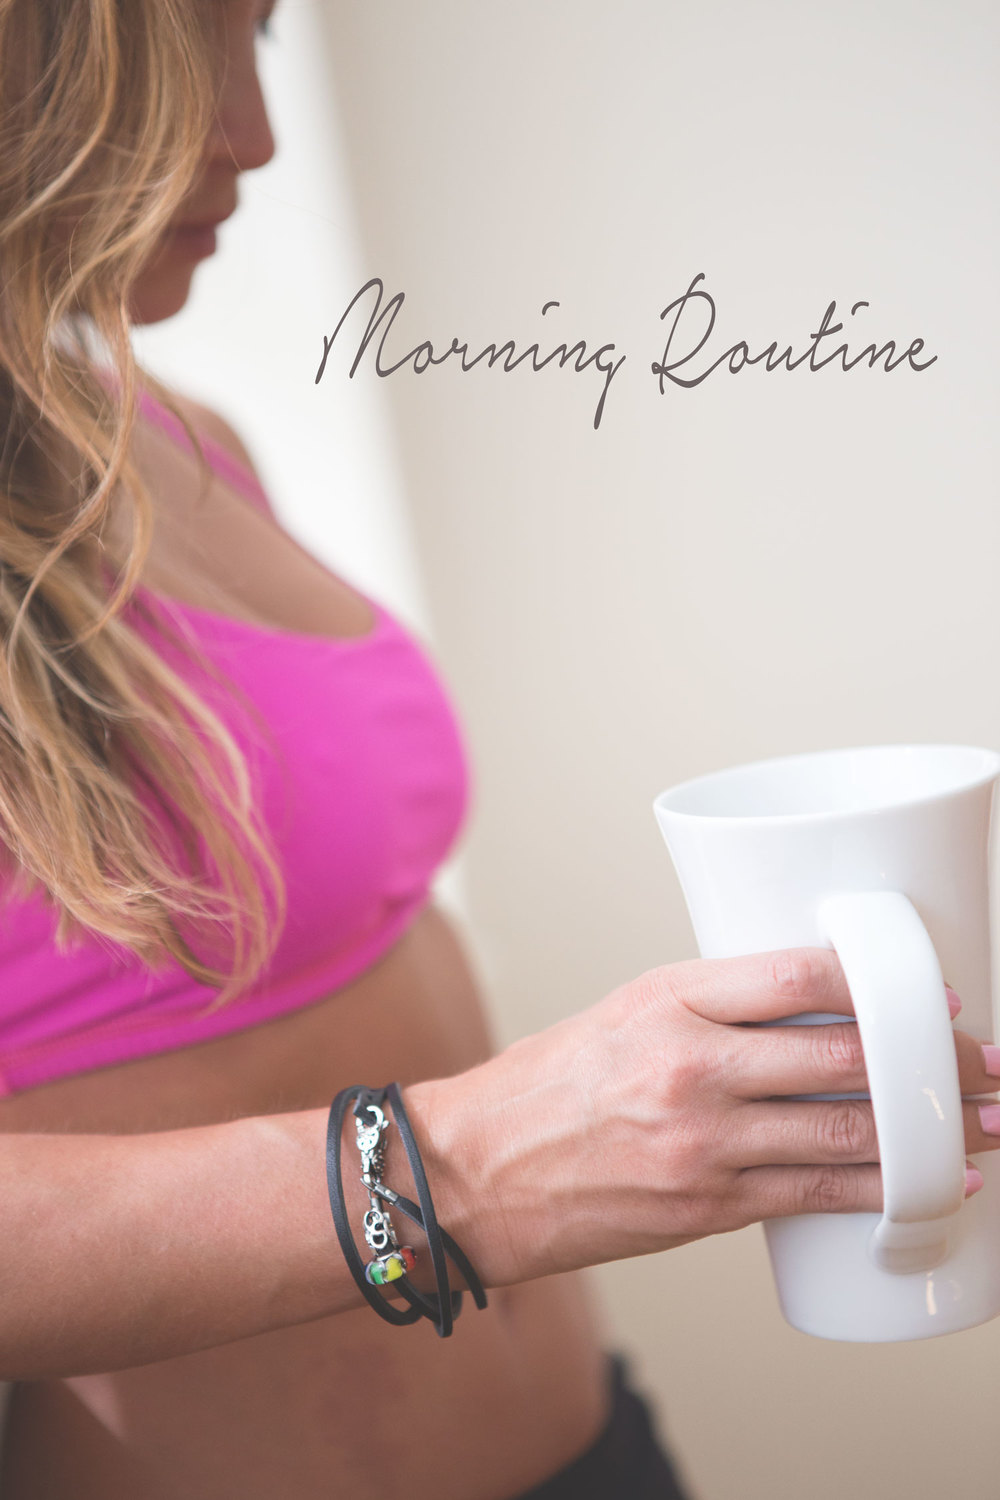 Wearing:  lululemon bra ,  trollbeads bracelet  c/o (save 20% with code: IAmCreative)  Pin now and share your morning routine!